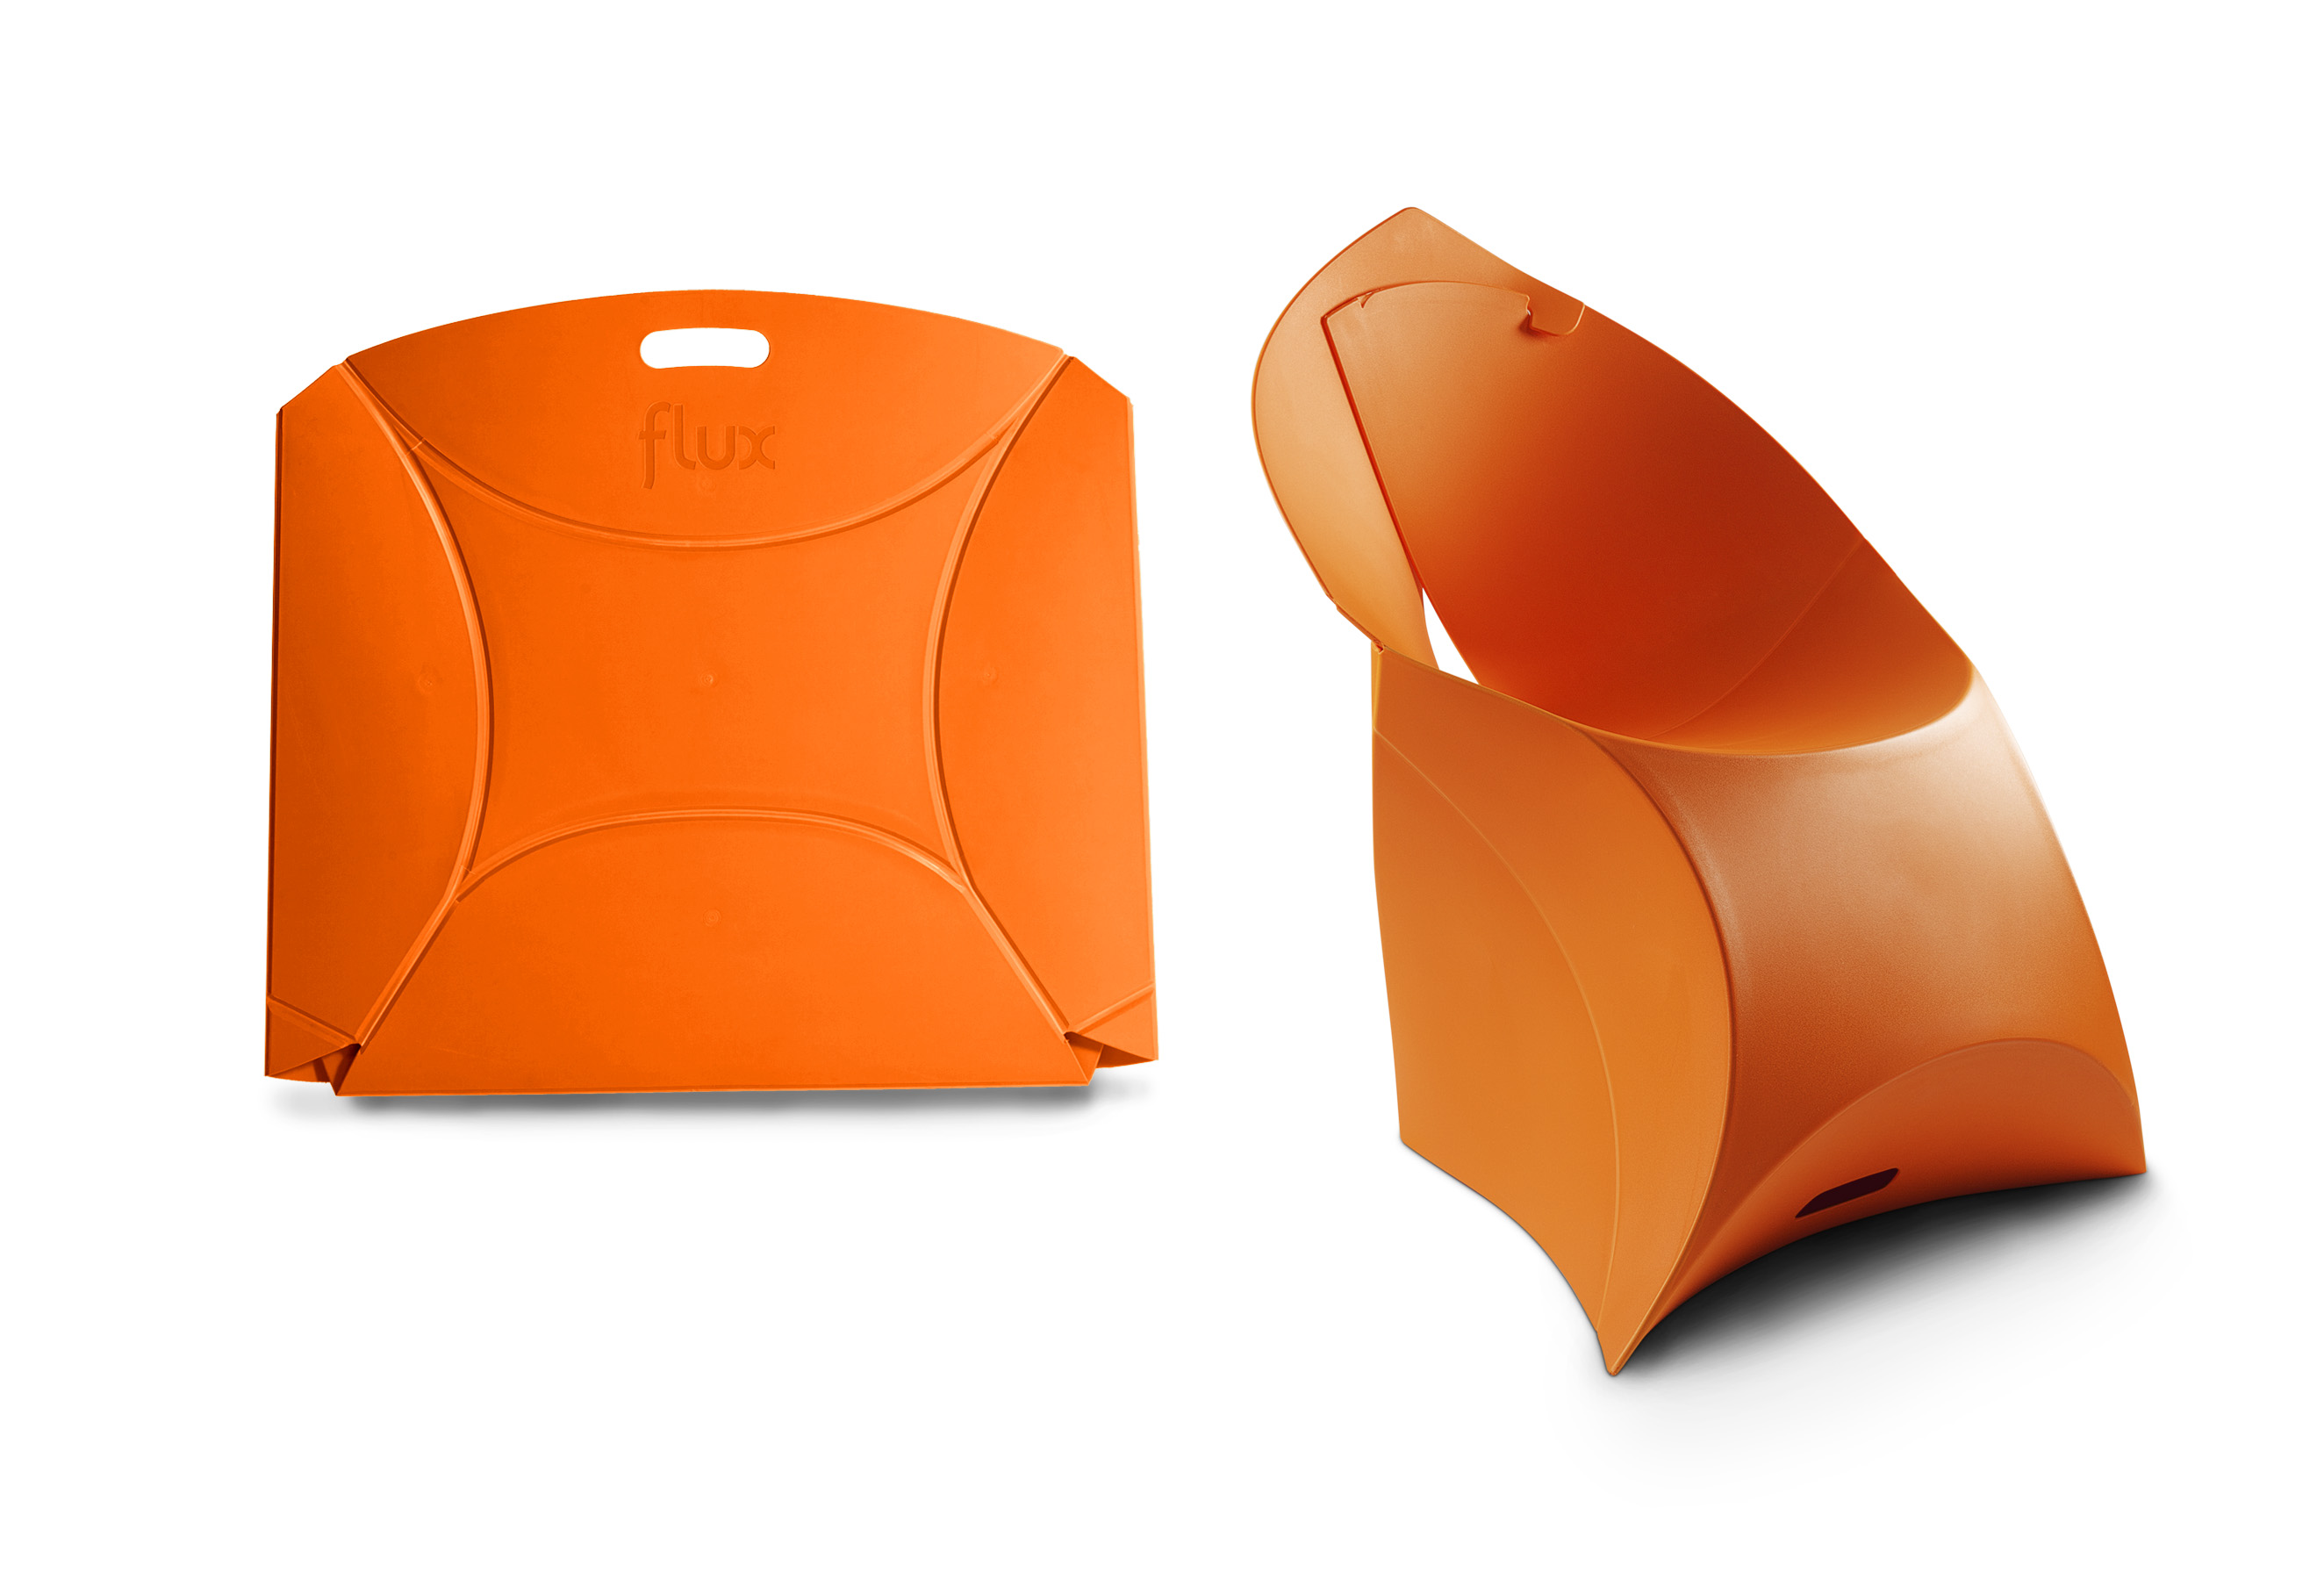 Origami Inspired Flux Chairs  for interieur blog